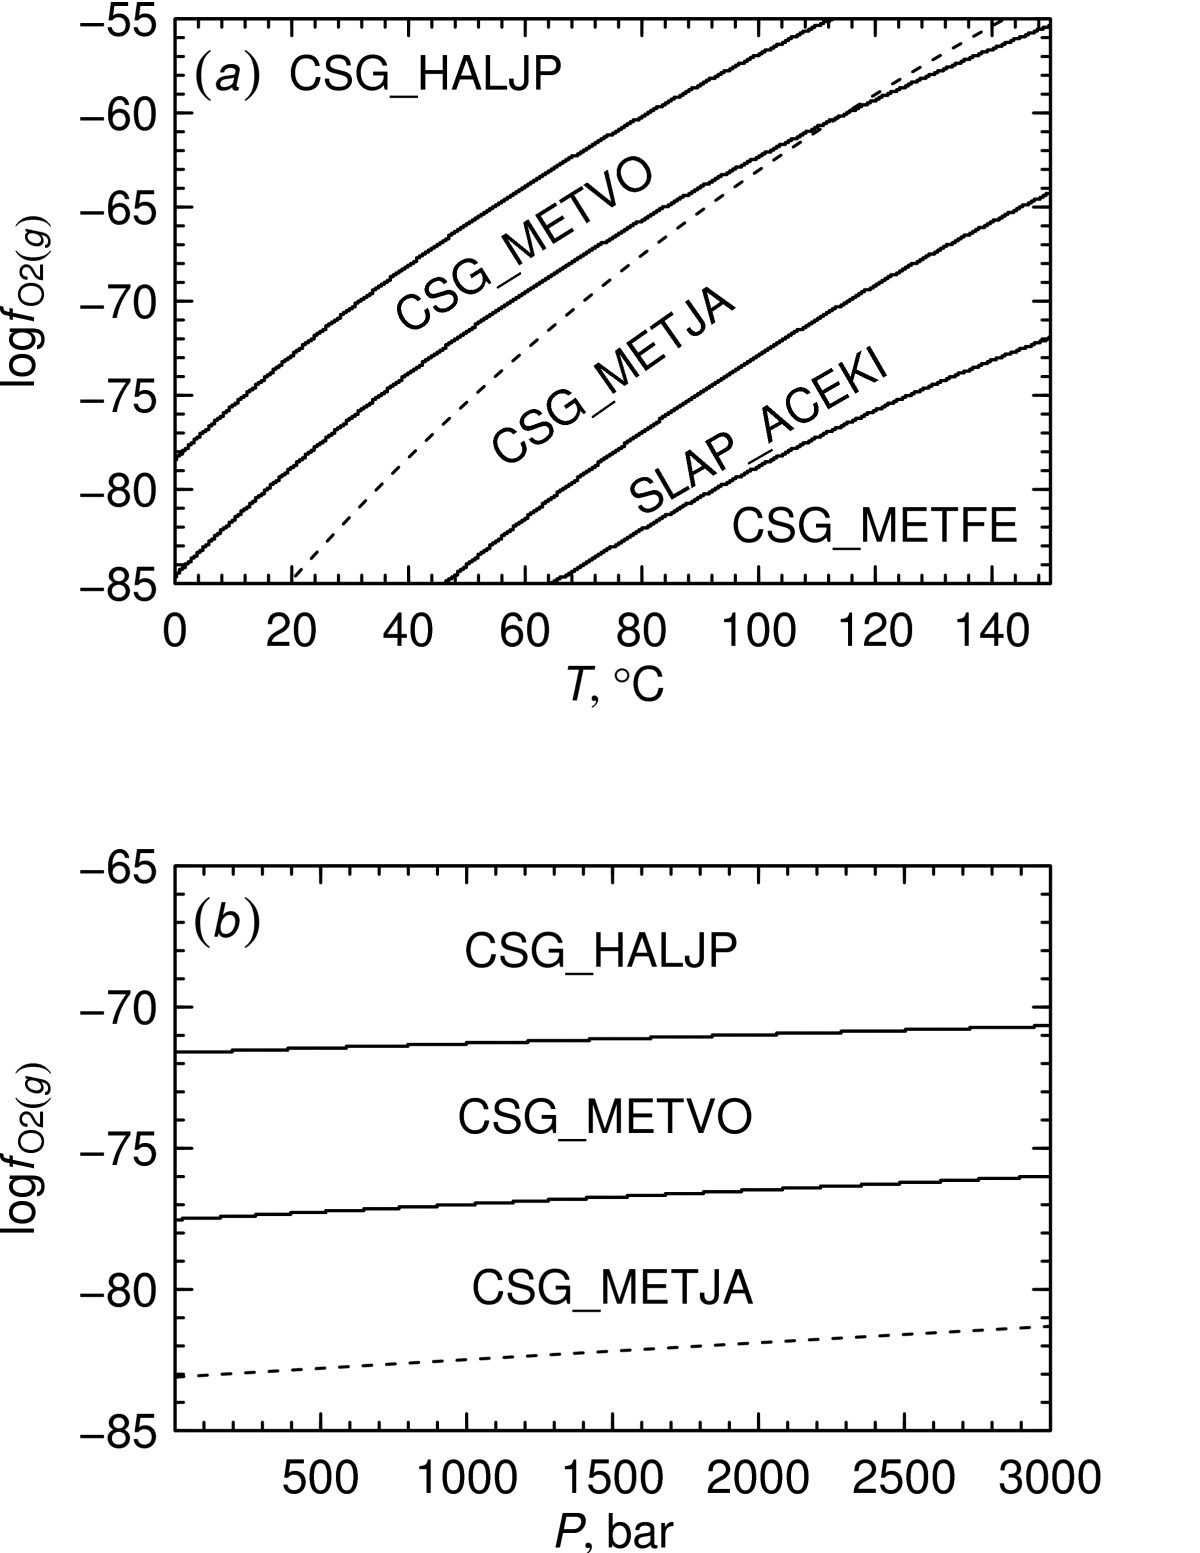 http://static-content.springer.com/image/art%3A10.1186%2F1467-4866-9-10/MediaObjects/12932_2008_Article_91_Fig6_HTML.jpg